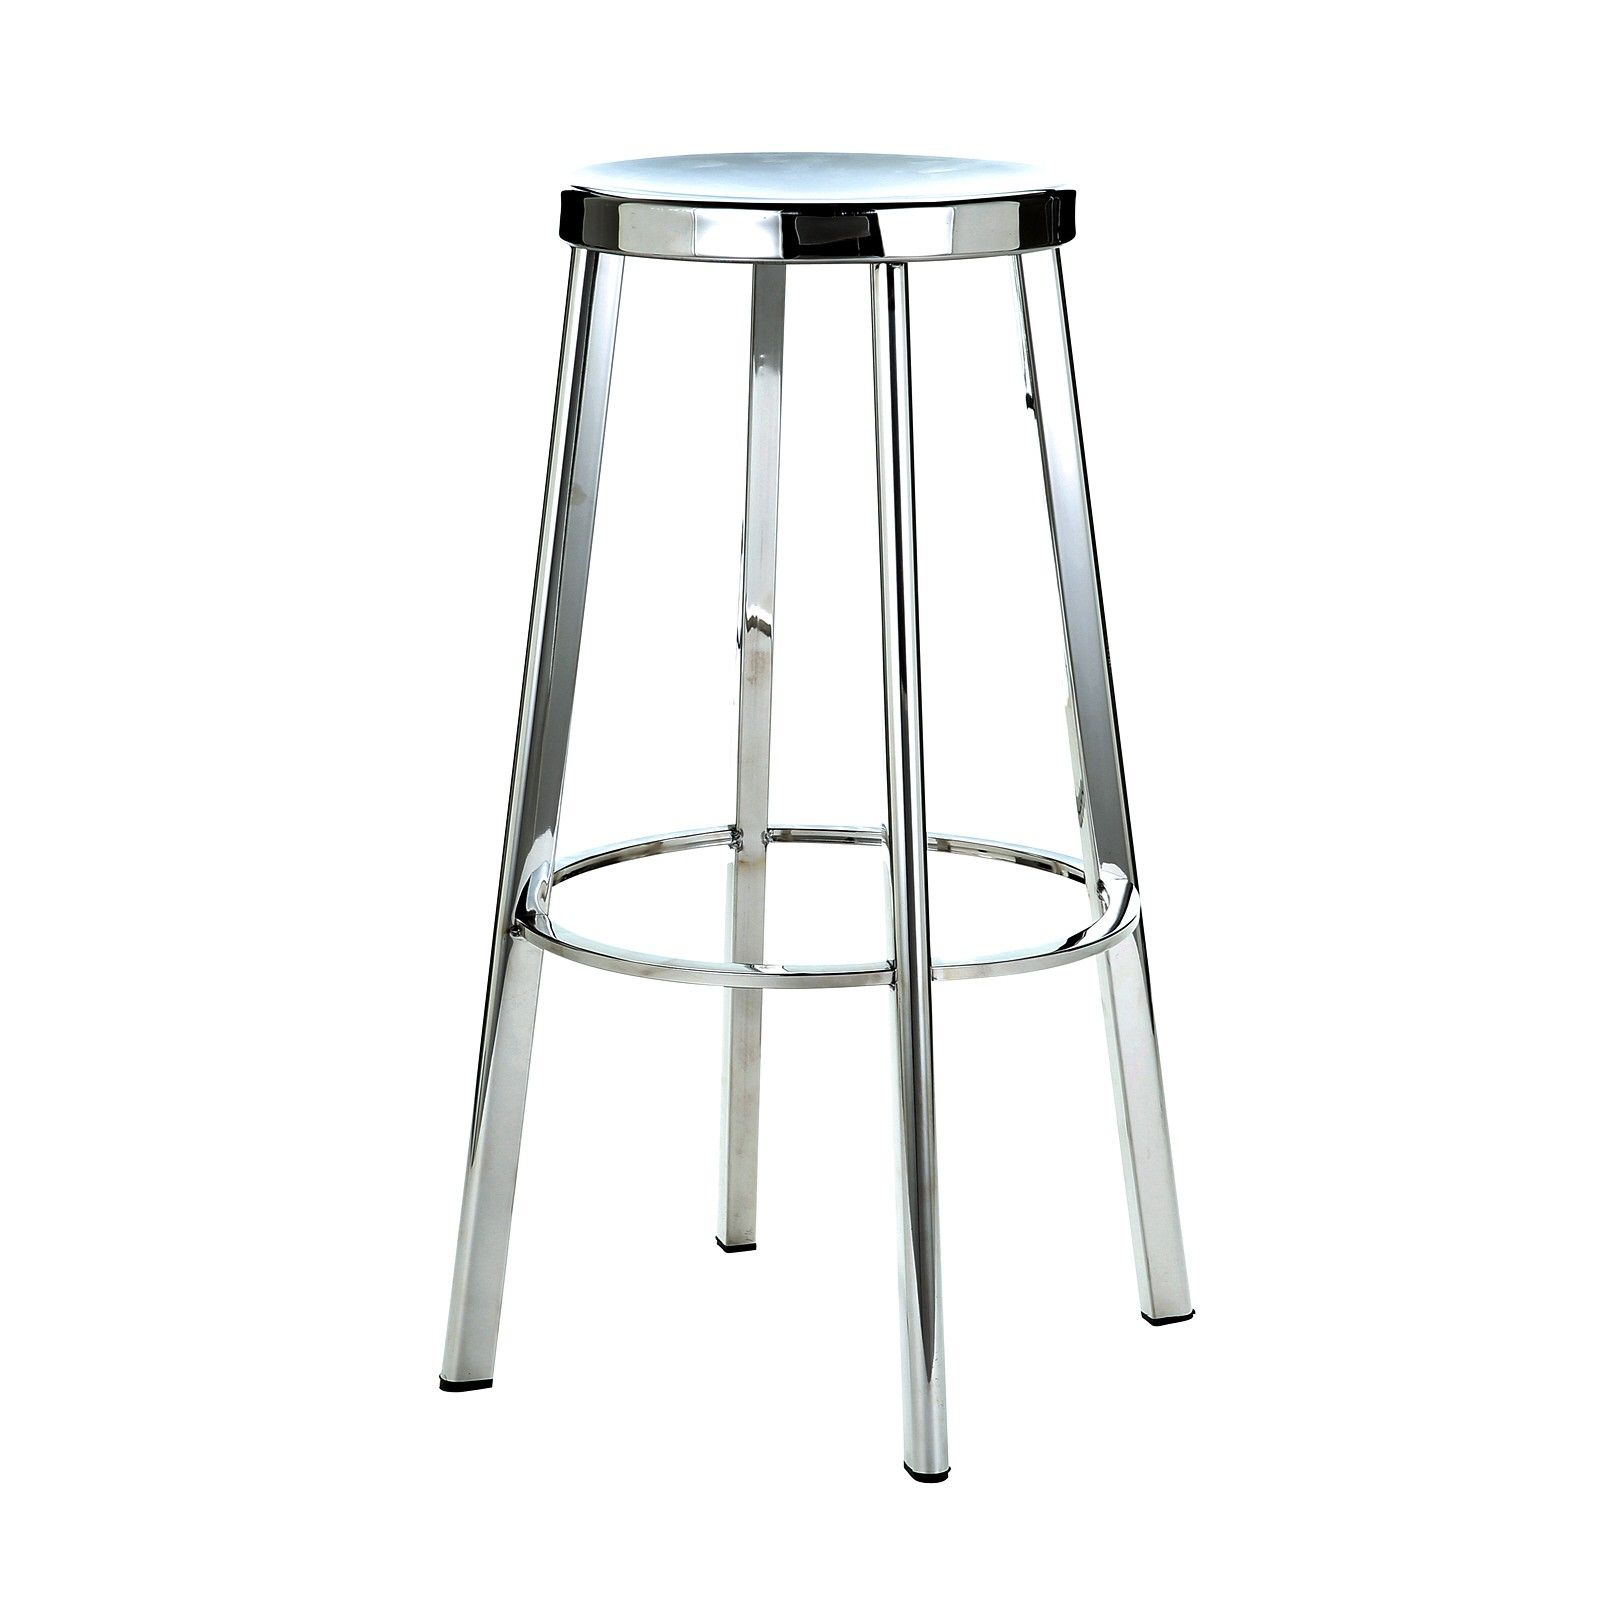 Stainless Steel Stools Kitchen: Polished & Brushed Stainless Steel Sassy 45cm Stools